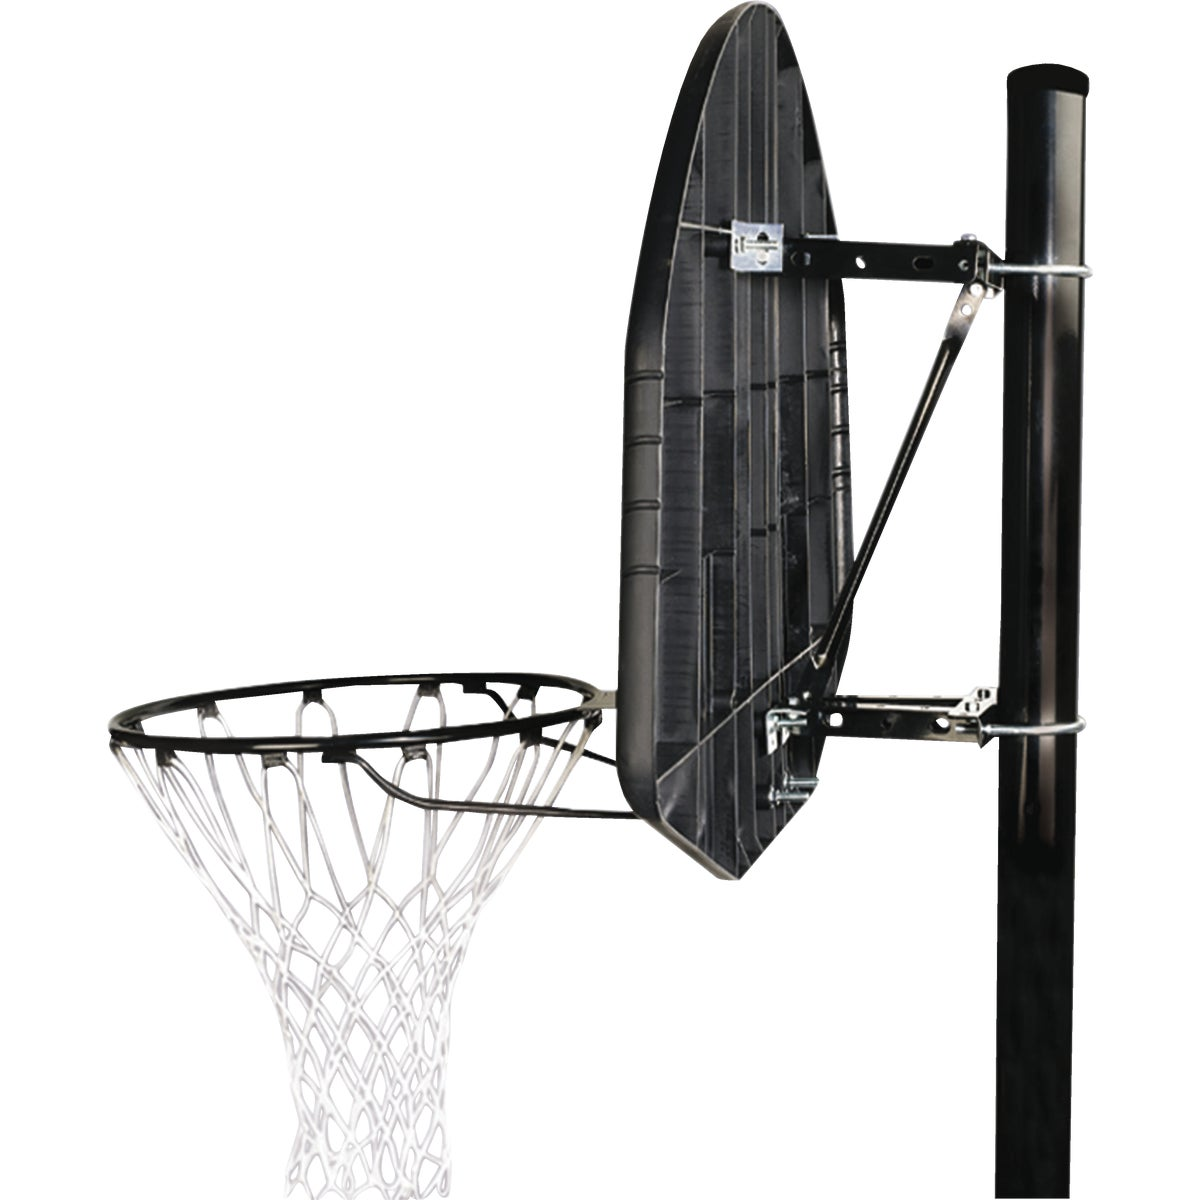 BACKBOARD BRACKET